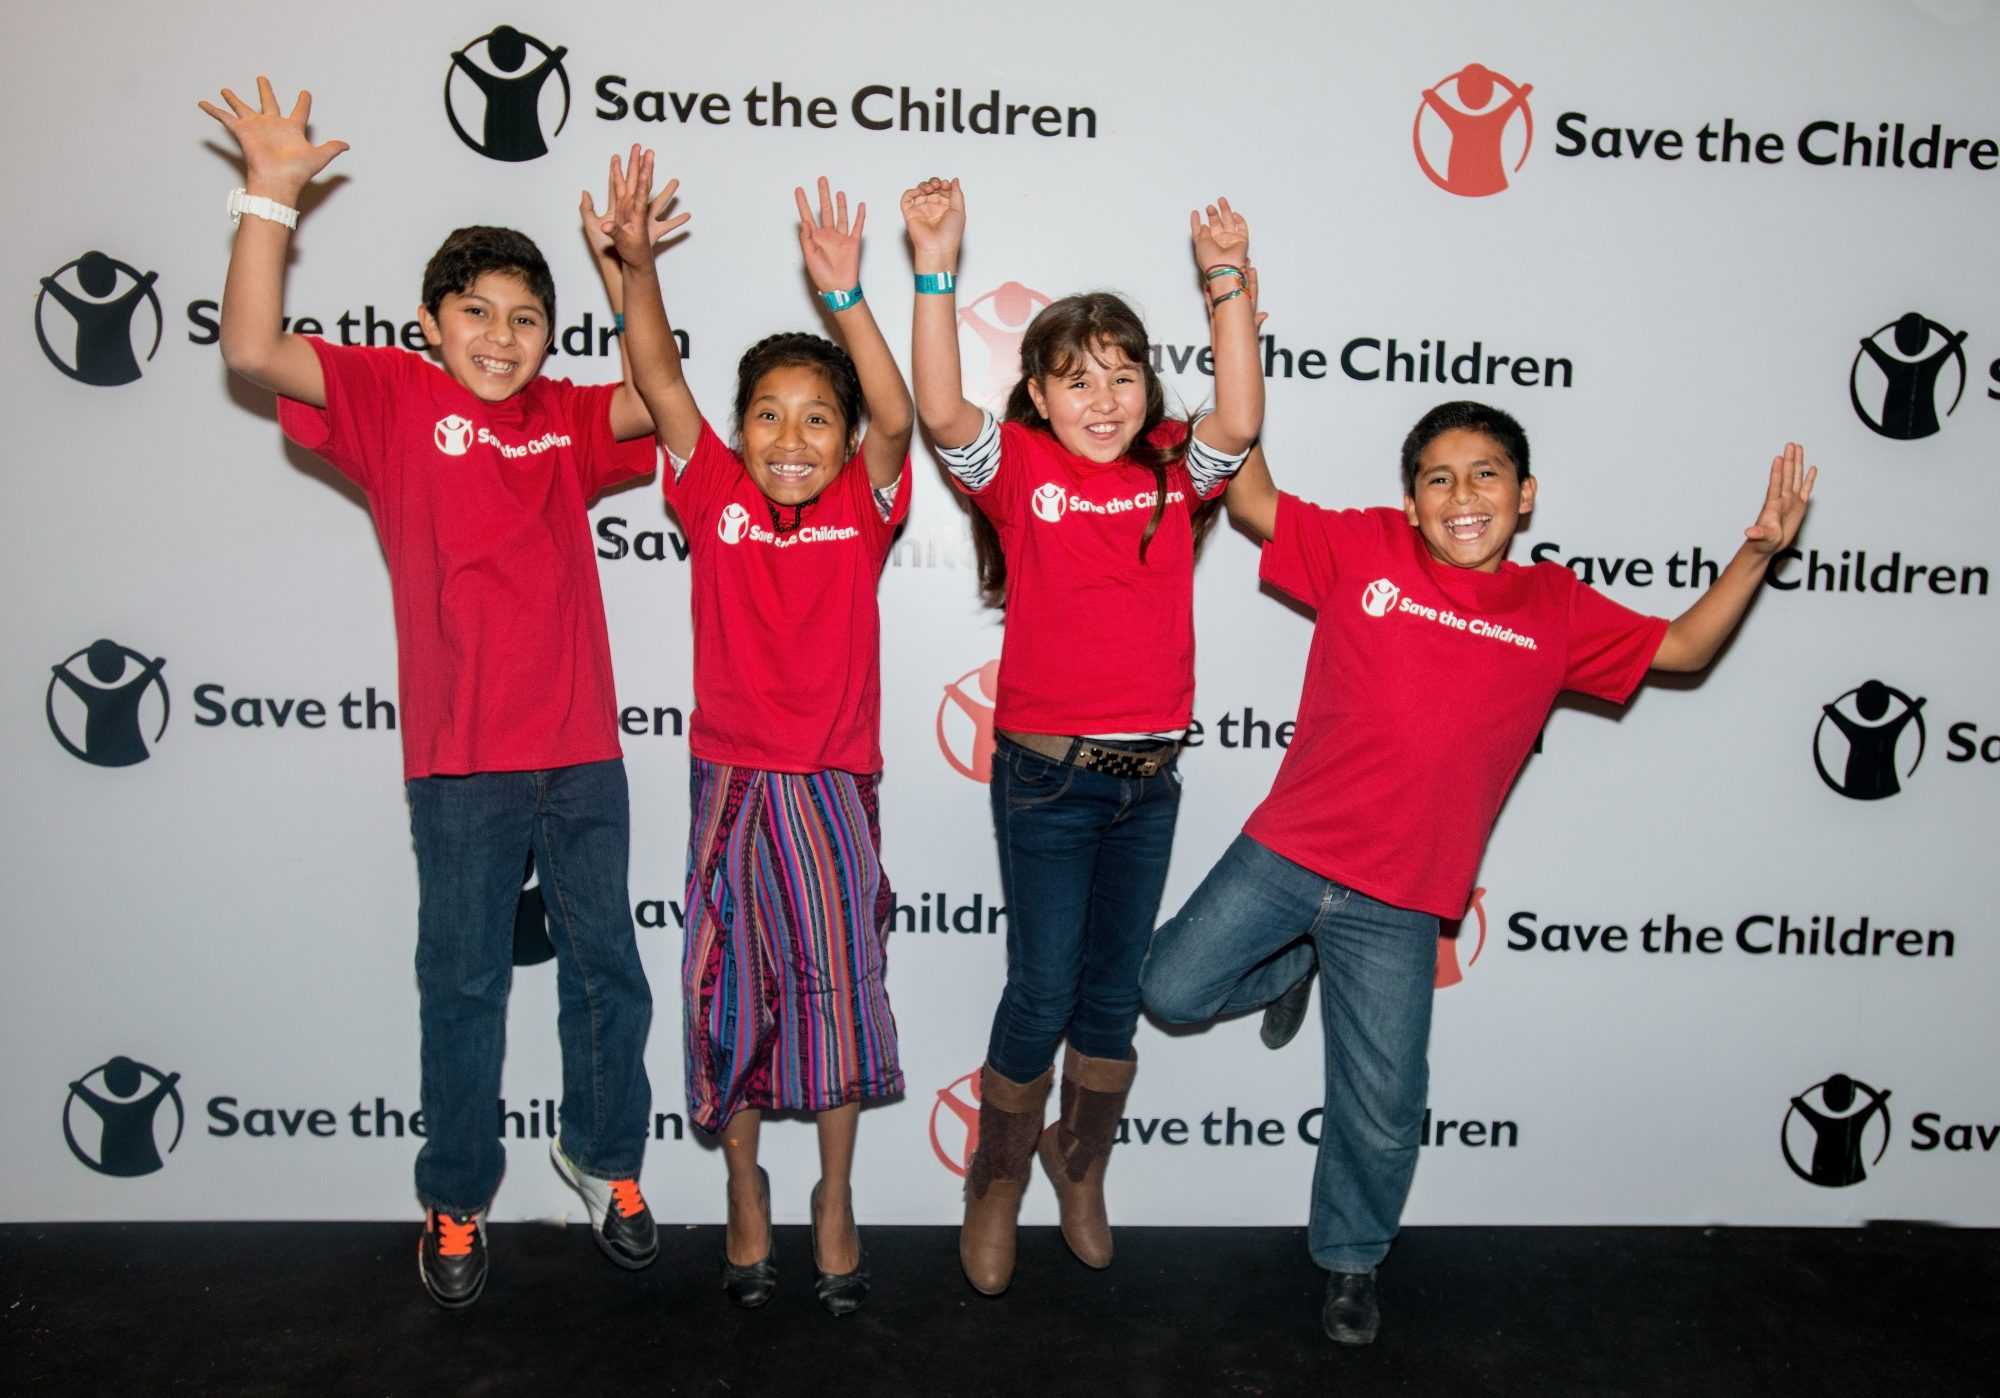 Photos are Embargoed until Tuesday December 13th, 2016. EXCLUSIVE PHOTO FOR PEOPLE: From left, Gerson, Juana, Henely and Julio jump for joy after meeting international pop star Enrique Iglesias before his Dec. 9, 2016, concert in Guatemala City, Guatemala. The kids, who all participate in Save the Children's Literacy Boost program in Guatemala, created a handmade book as a thank you gift for Iglesias, who, through a partnership with Microsoft, has donated $200,000 in software to Save the Children to strengthen its literacy programming for elementary school-age children in El Salvador, Guatemala and Peru.